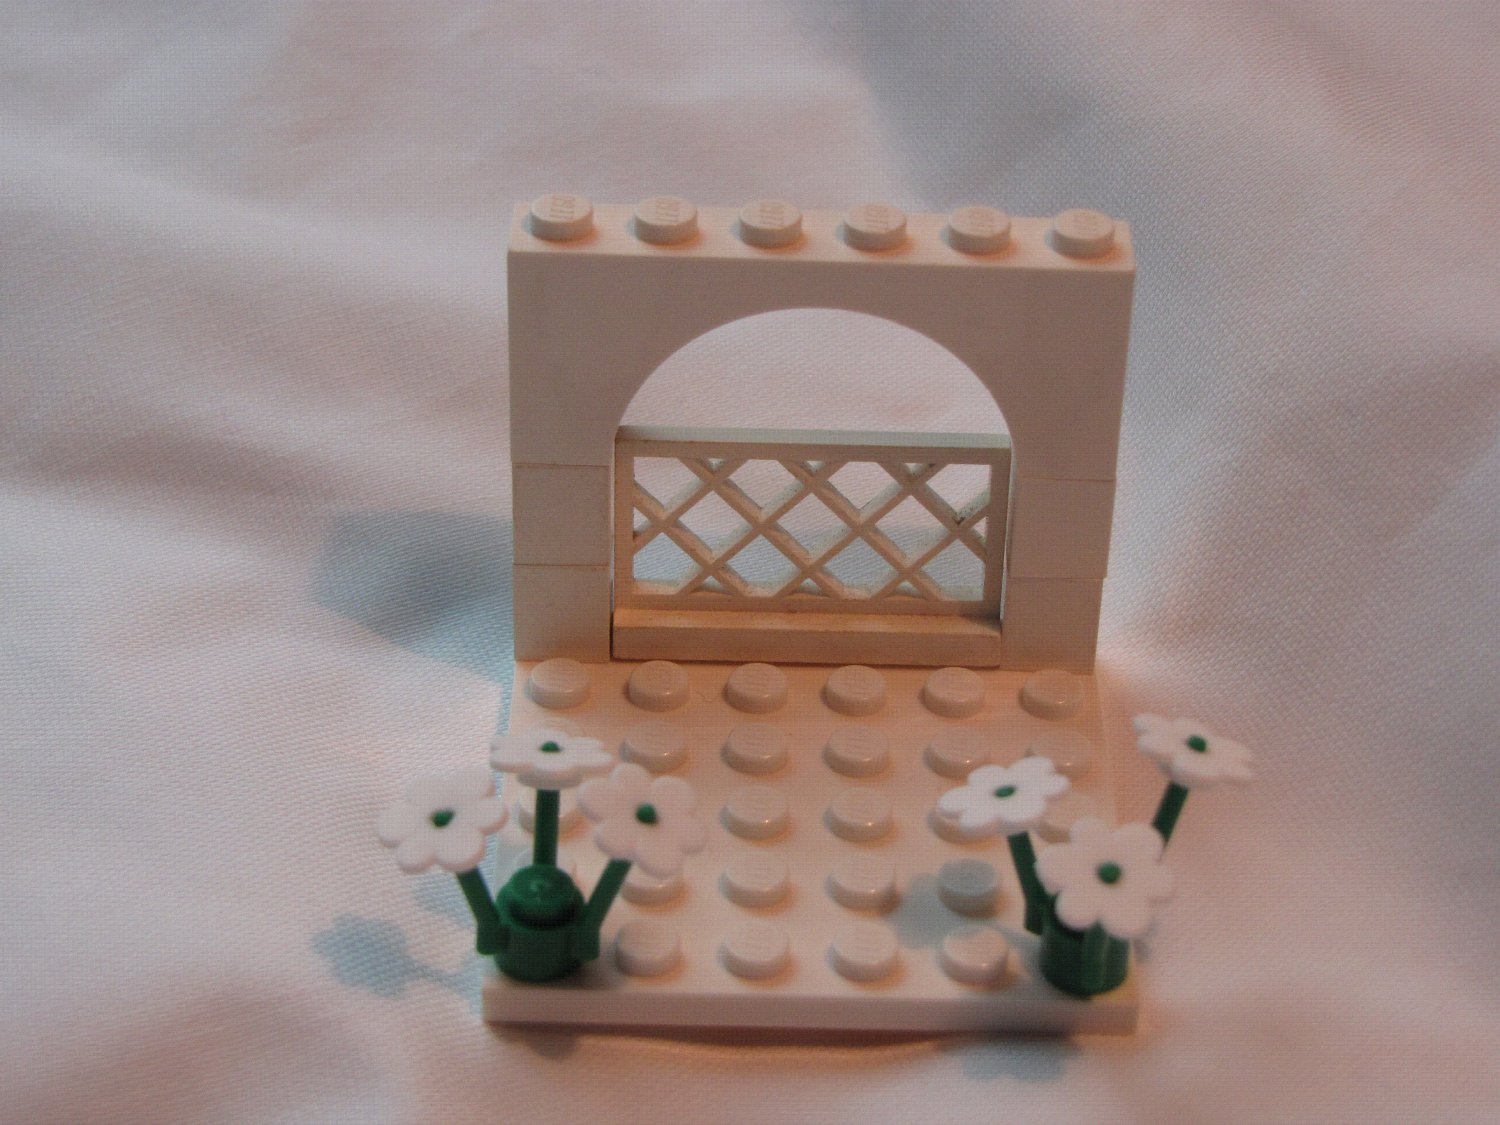 Lego WEDDING ARCH for Bride & Groom cake topper minifig